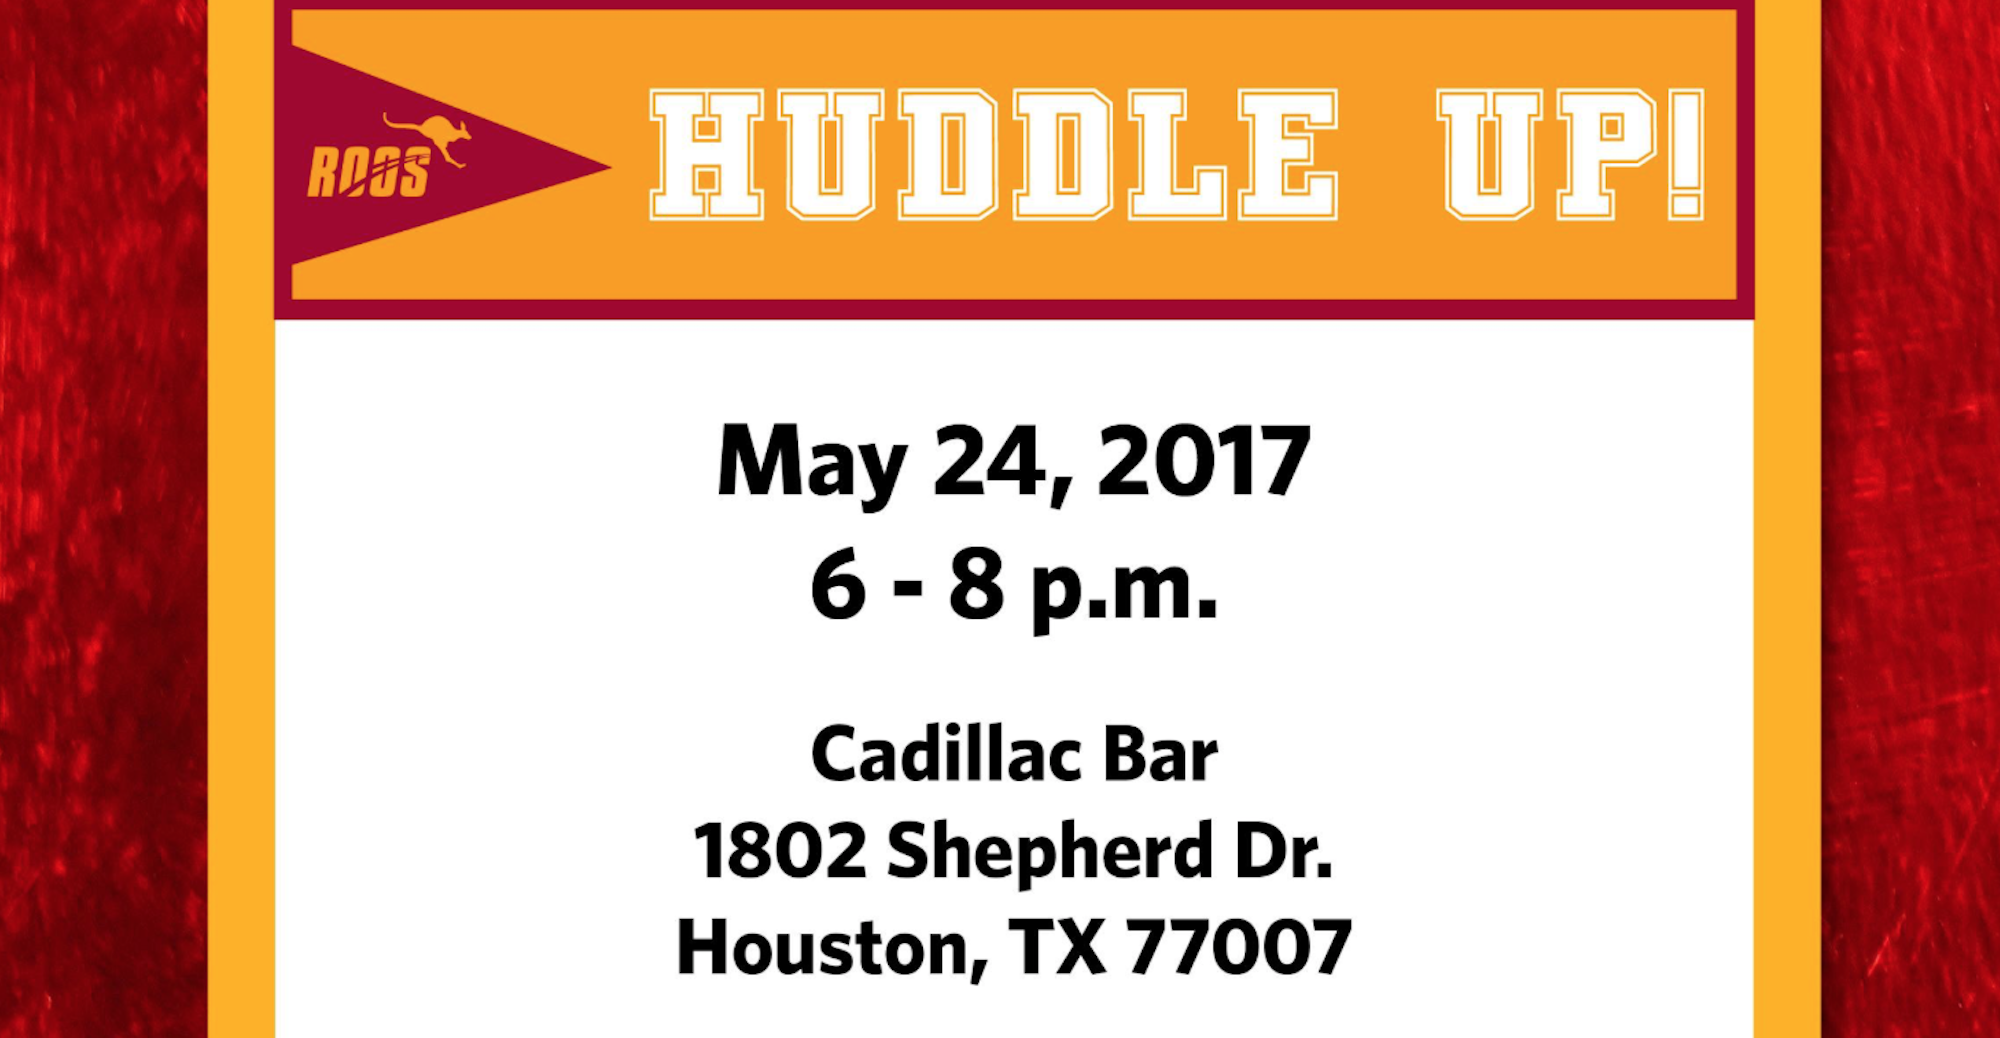 Huddle Up with the Coaches in Houston on May 24!